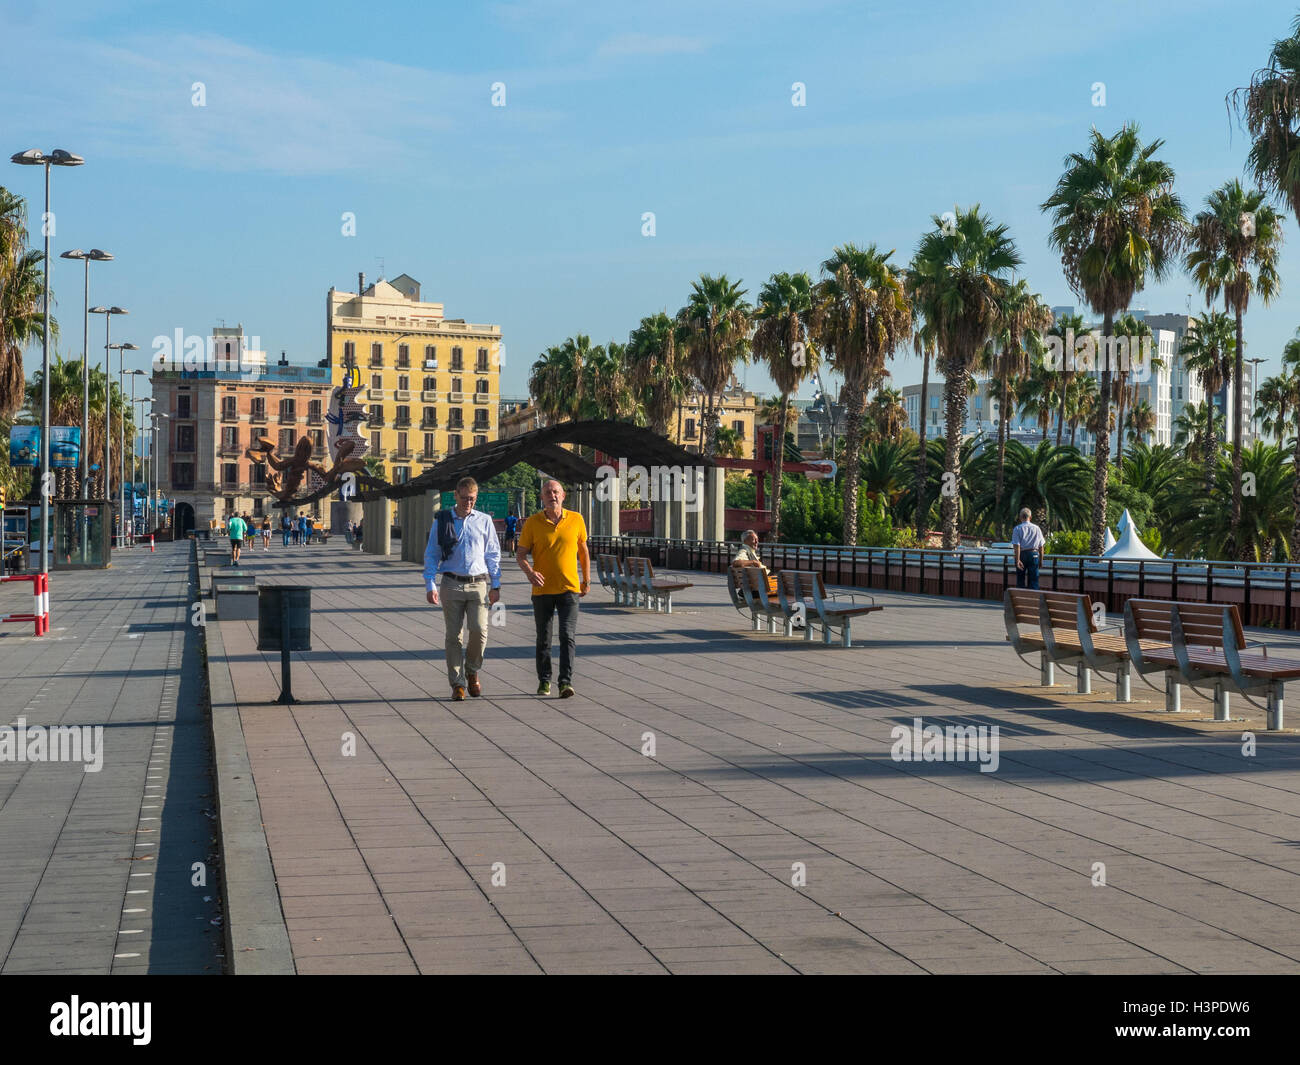 BARCELONA, SPAIN - OCT 5: passersby on a sunny day on October 5, 2016, on the Walk 'Moll de la Fusta', on - Stock Image